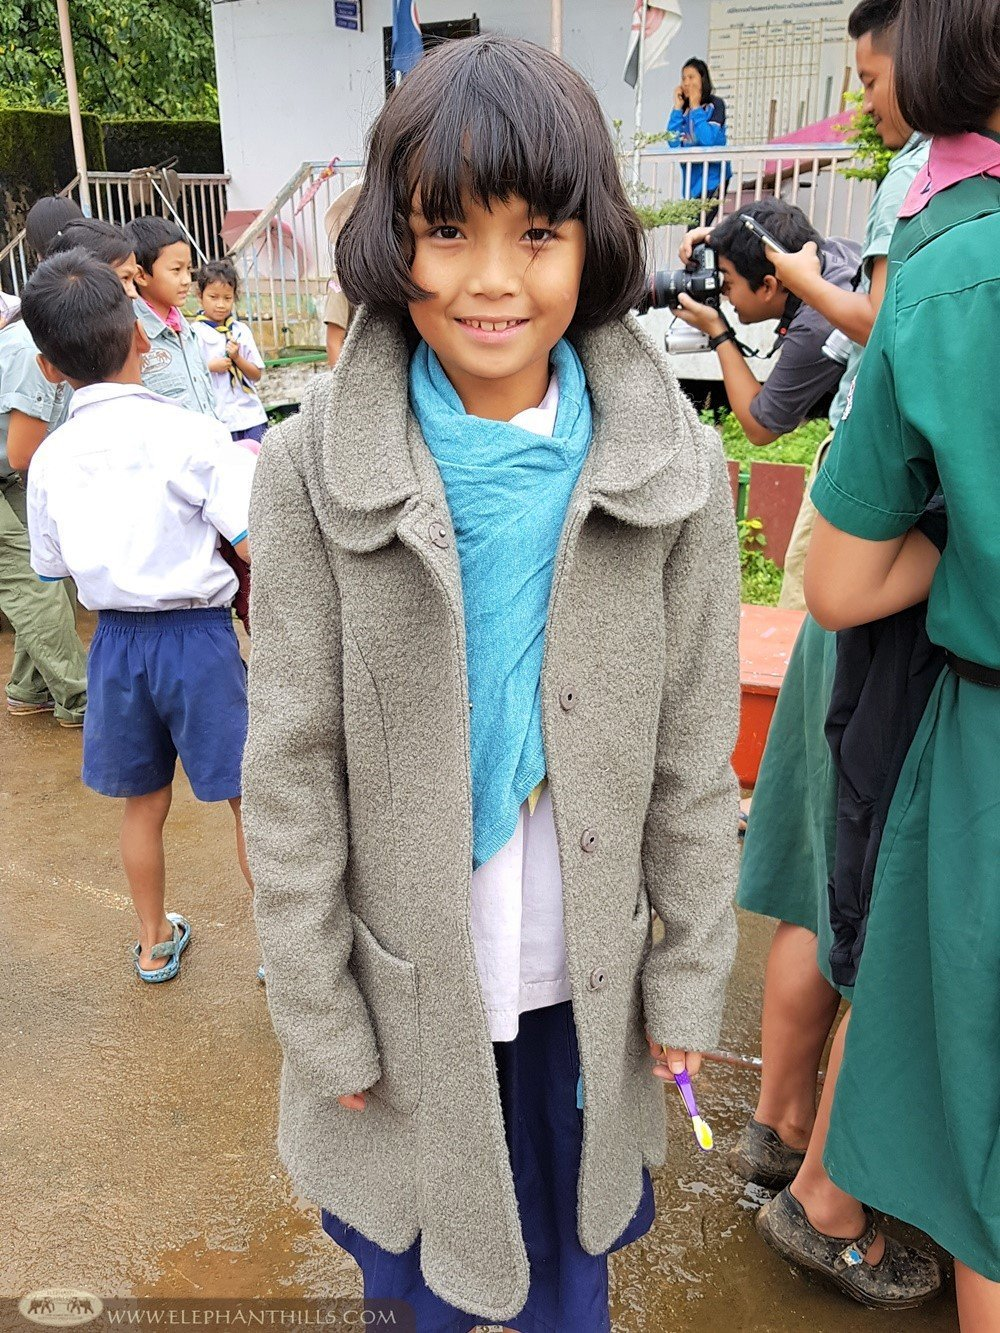 Elephant Hills - Helping schools in Mae Hong Son - Donating clothes